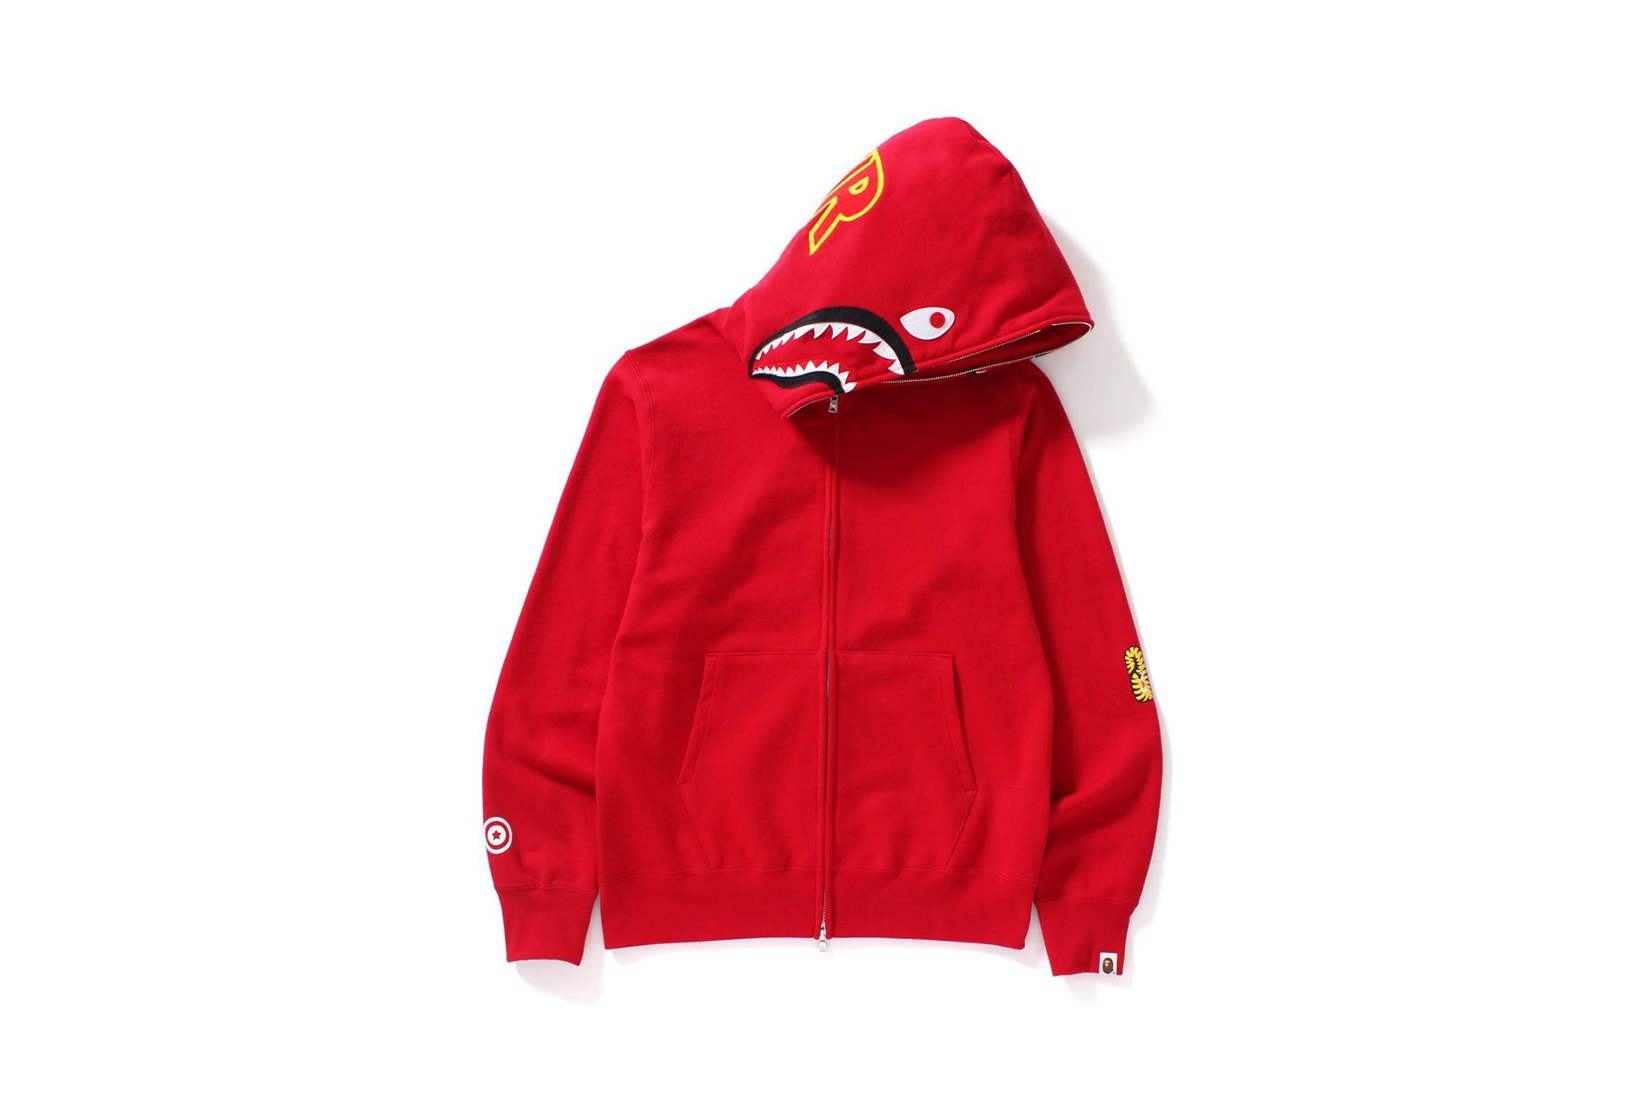 7120055c677b Check out some photos below and look out for the 2nd Shark Full Zip Hoodie  capsule on BAPE s website and at select retailers on April 1.